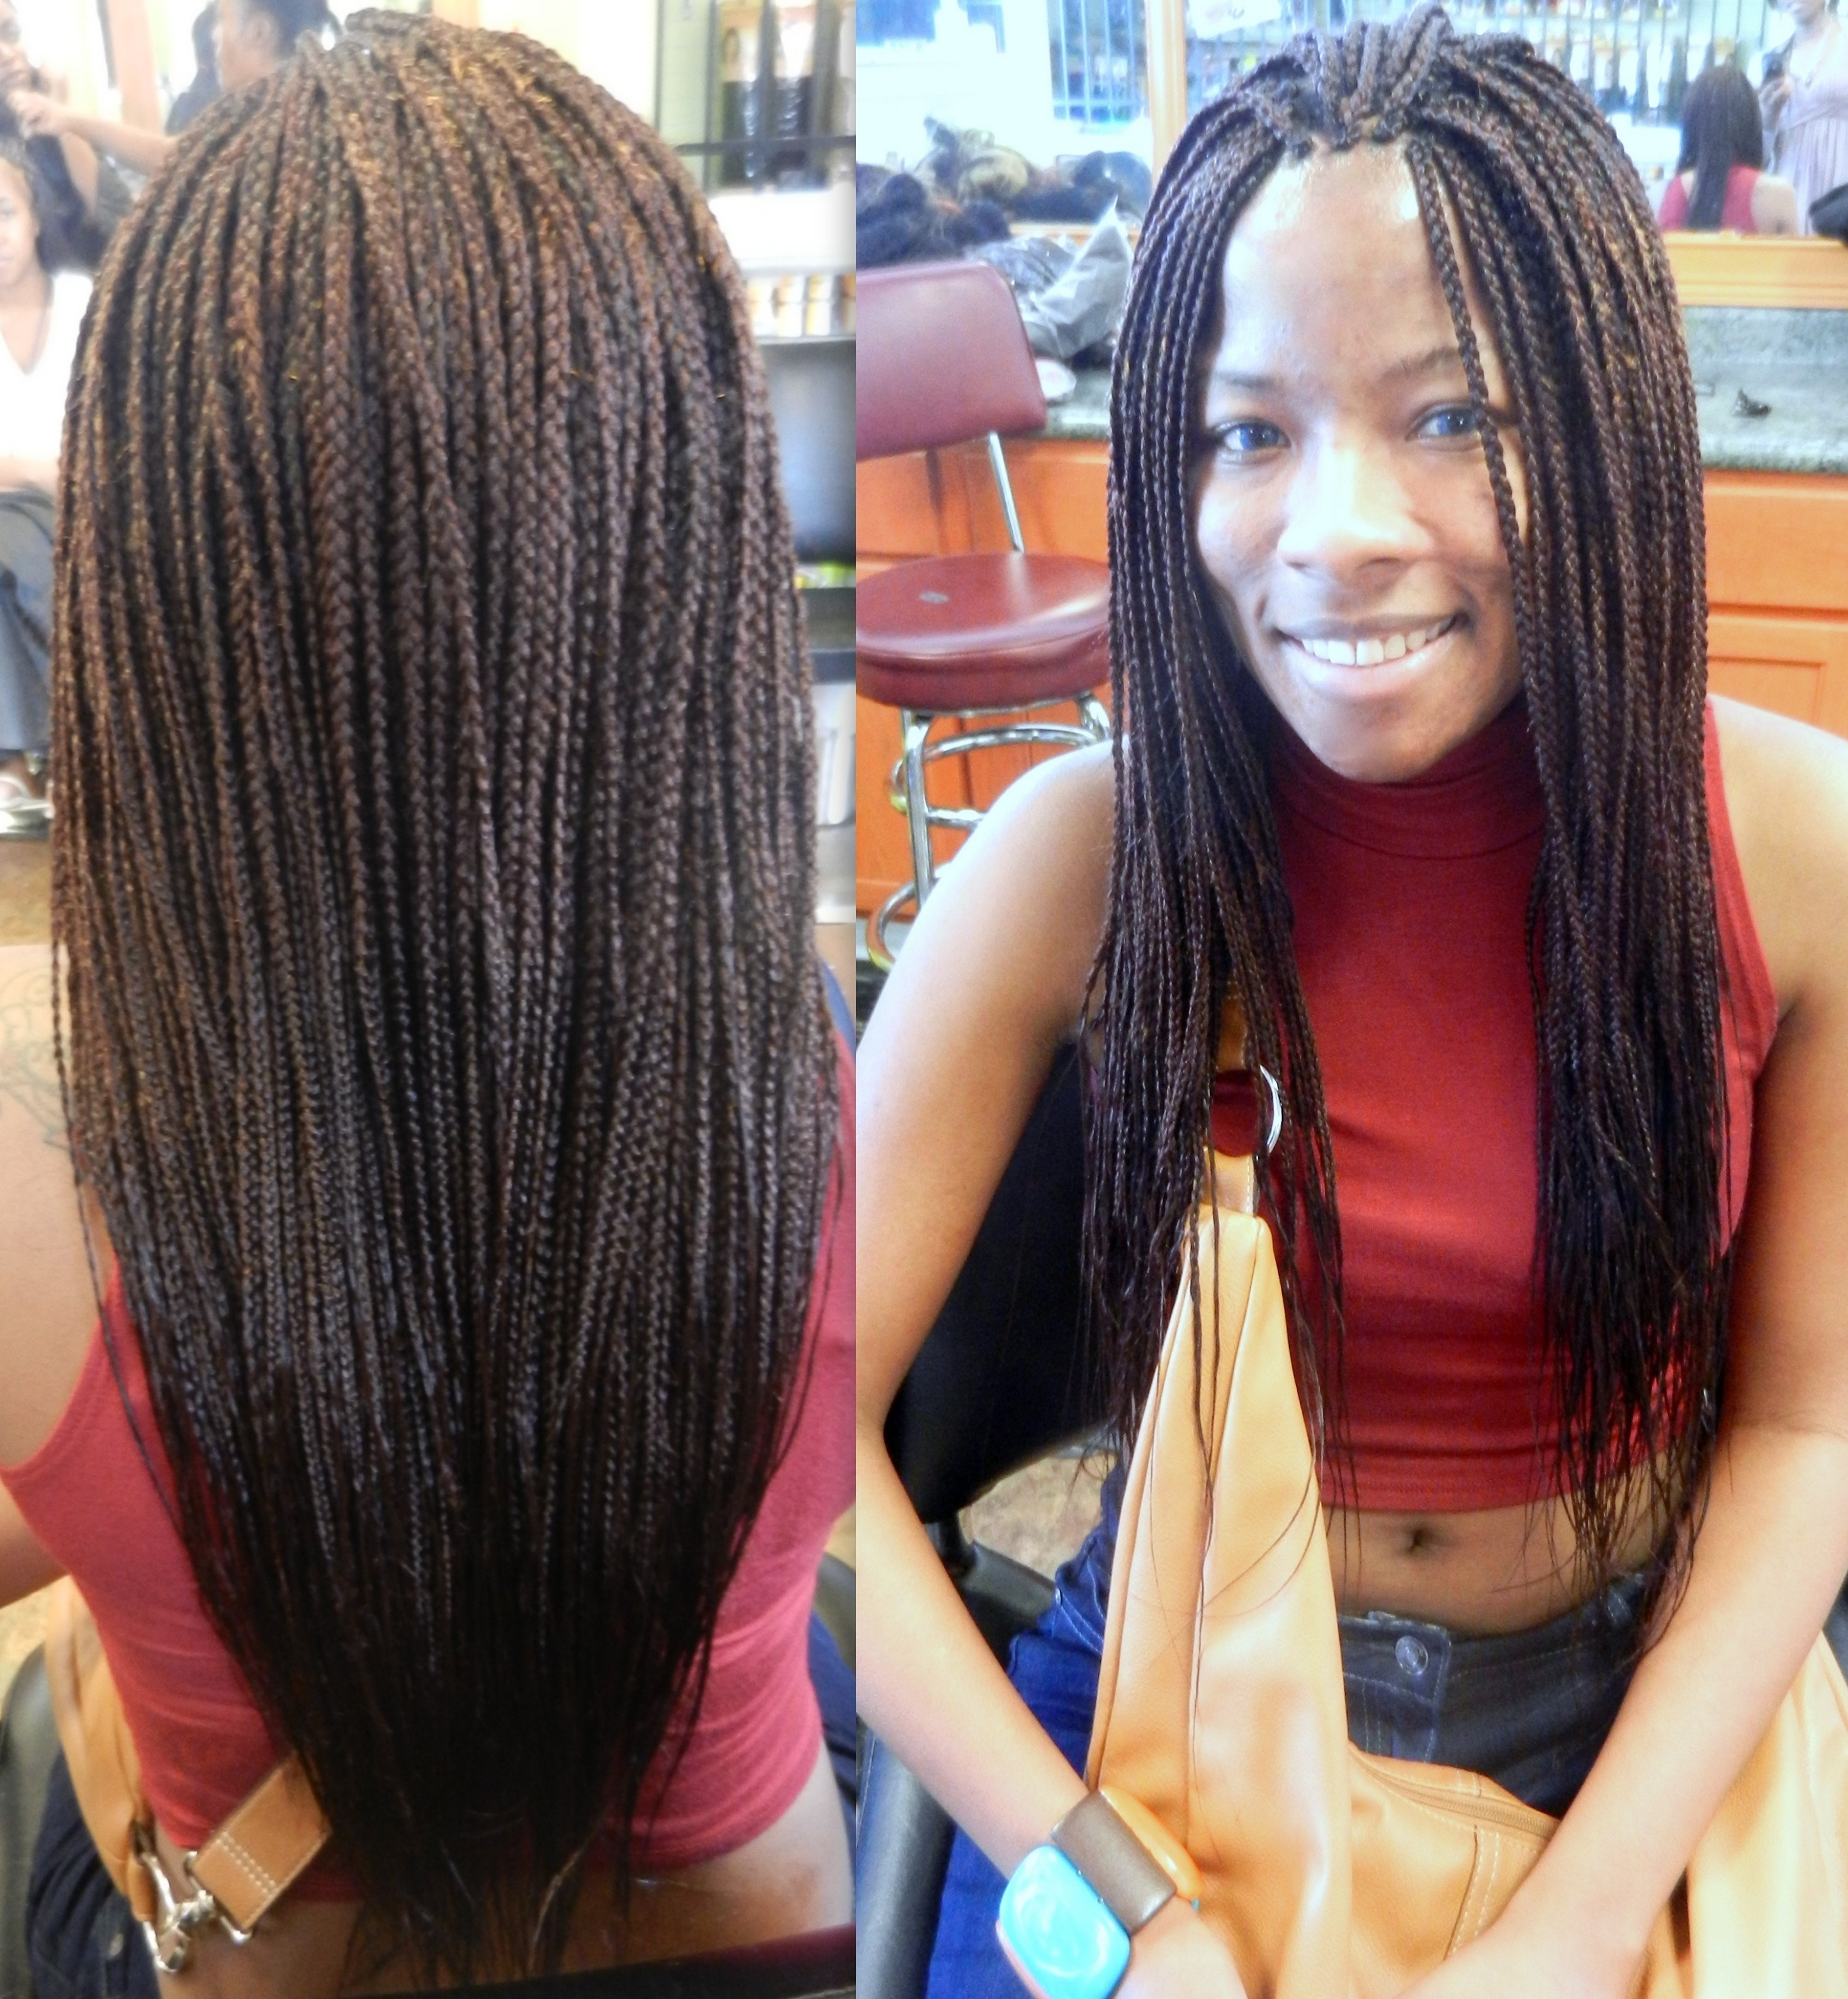 The Types Of Box Braid Hairstyles To Try 2018 – Best Hairstyles Trend Regarding 2018 Singles Braided Hairstyles (View 3 of 15)